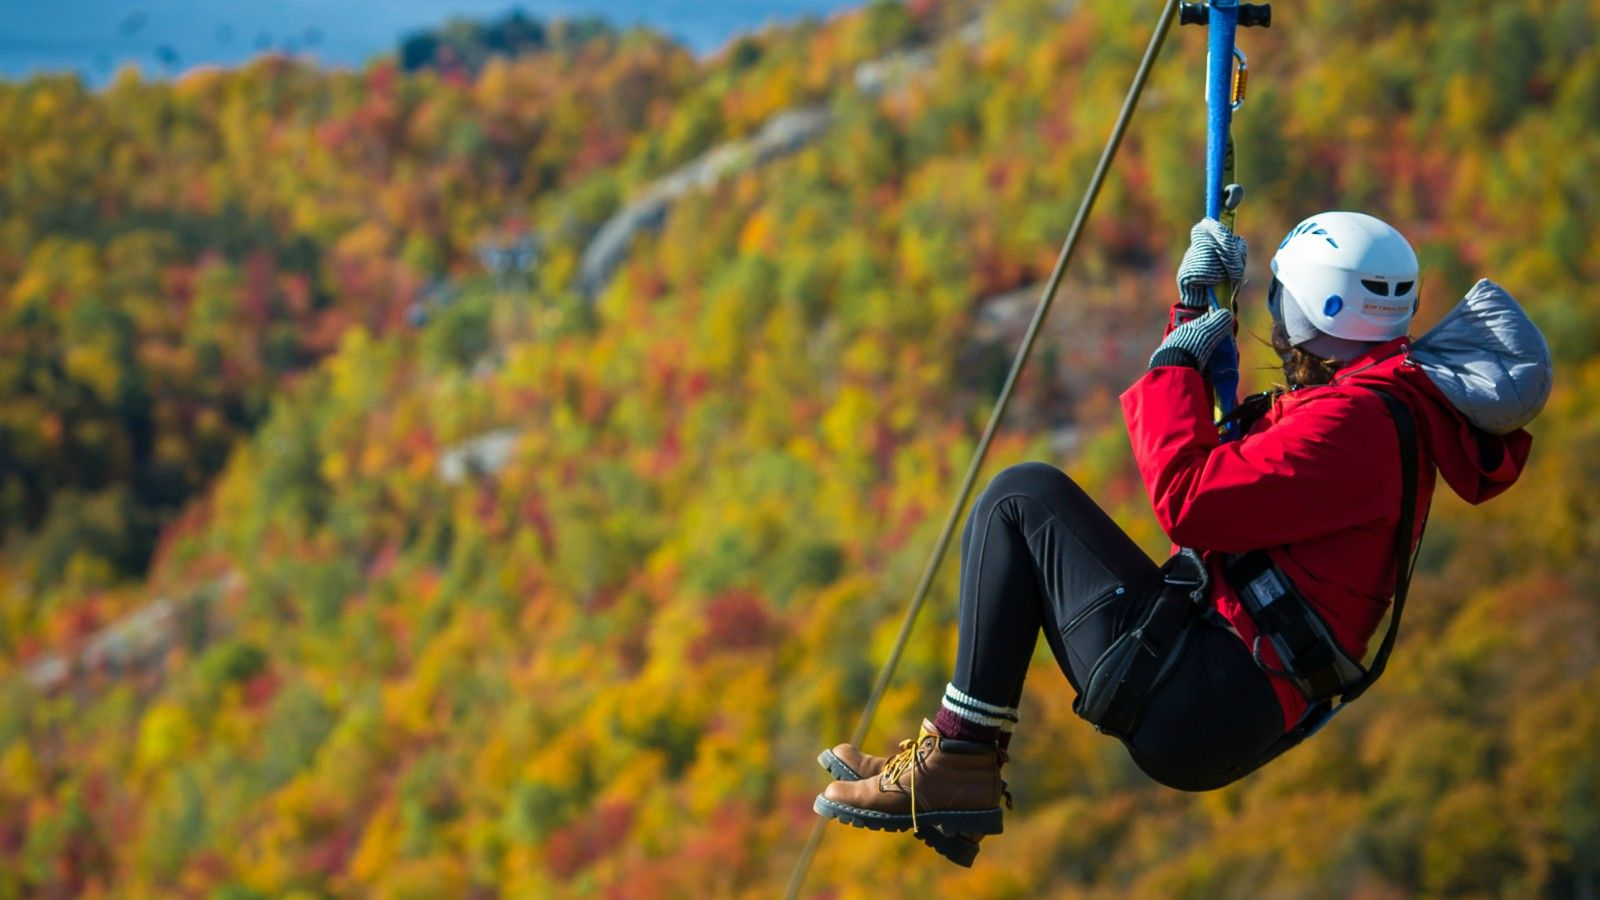 Things to do at Tremblant - Zipline